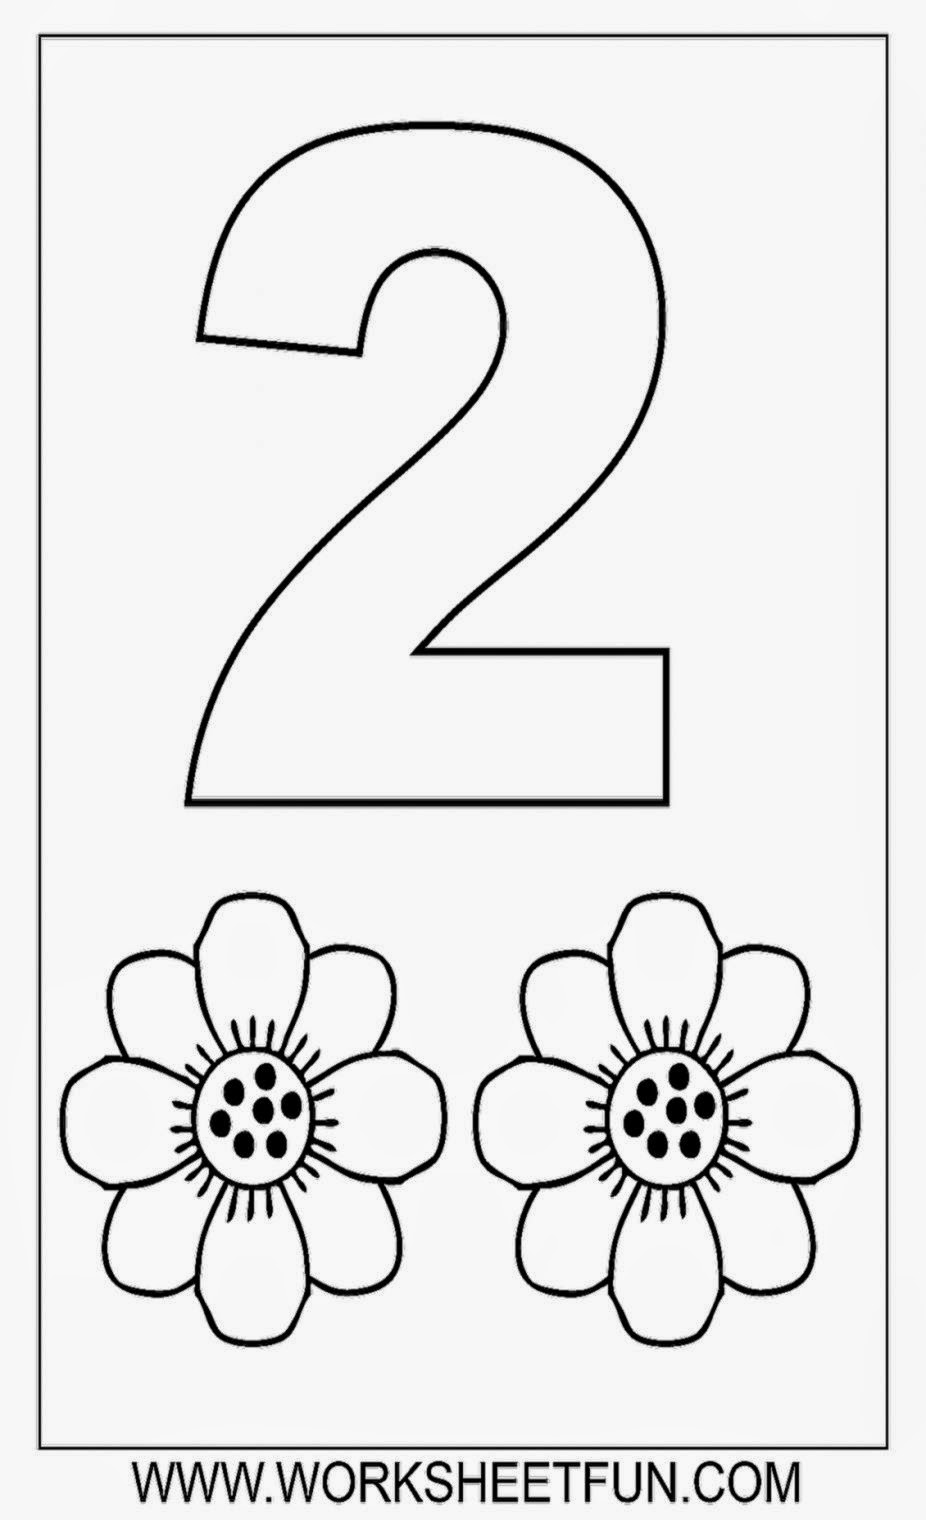 Printable Coloring Numbers : Printable color by number sheets free coloring sheet